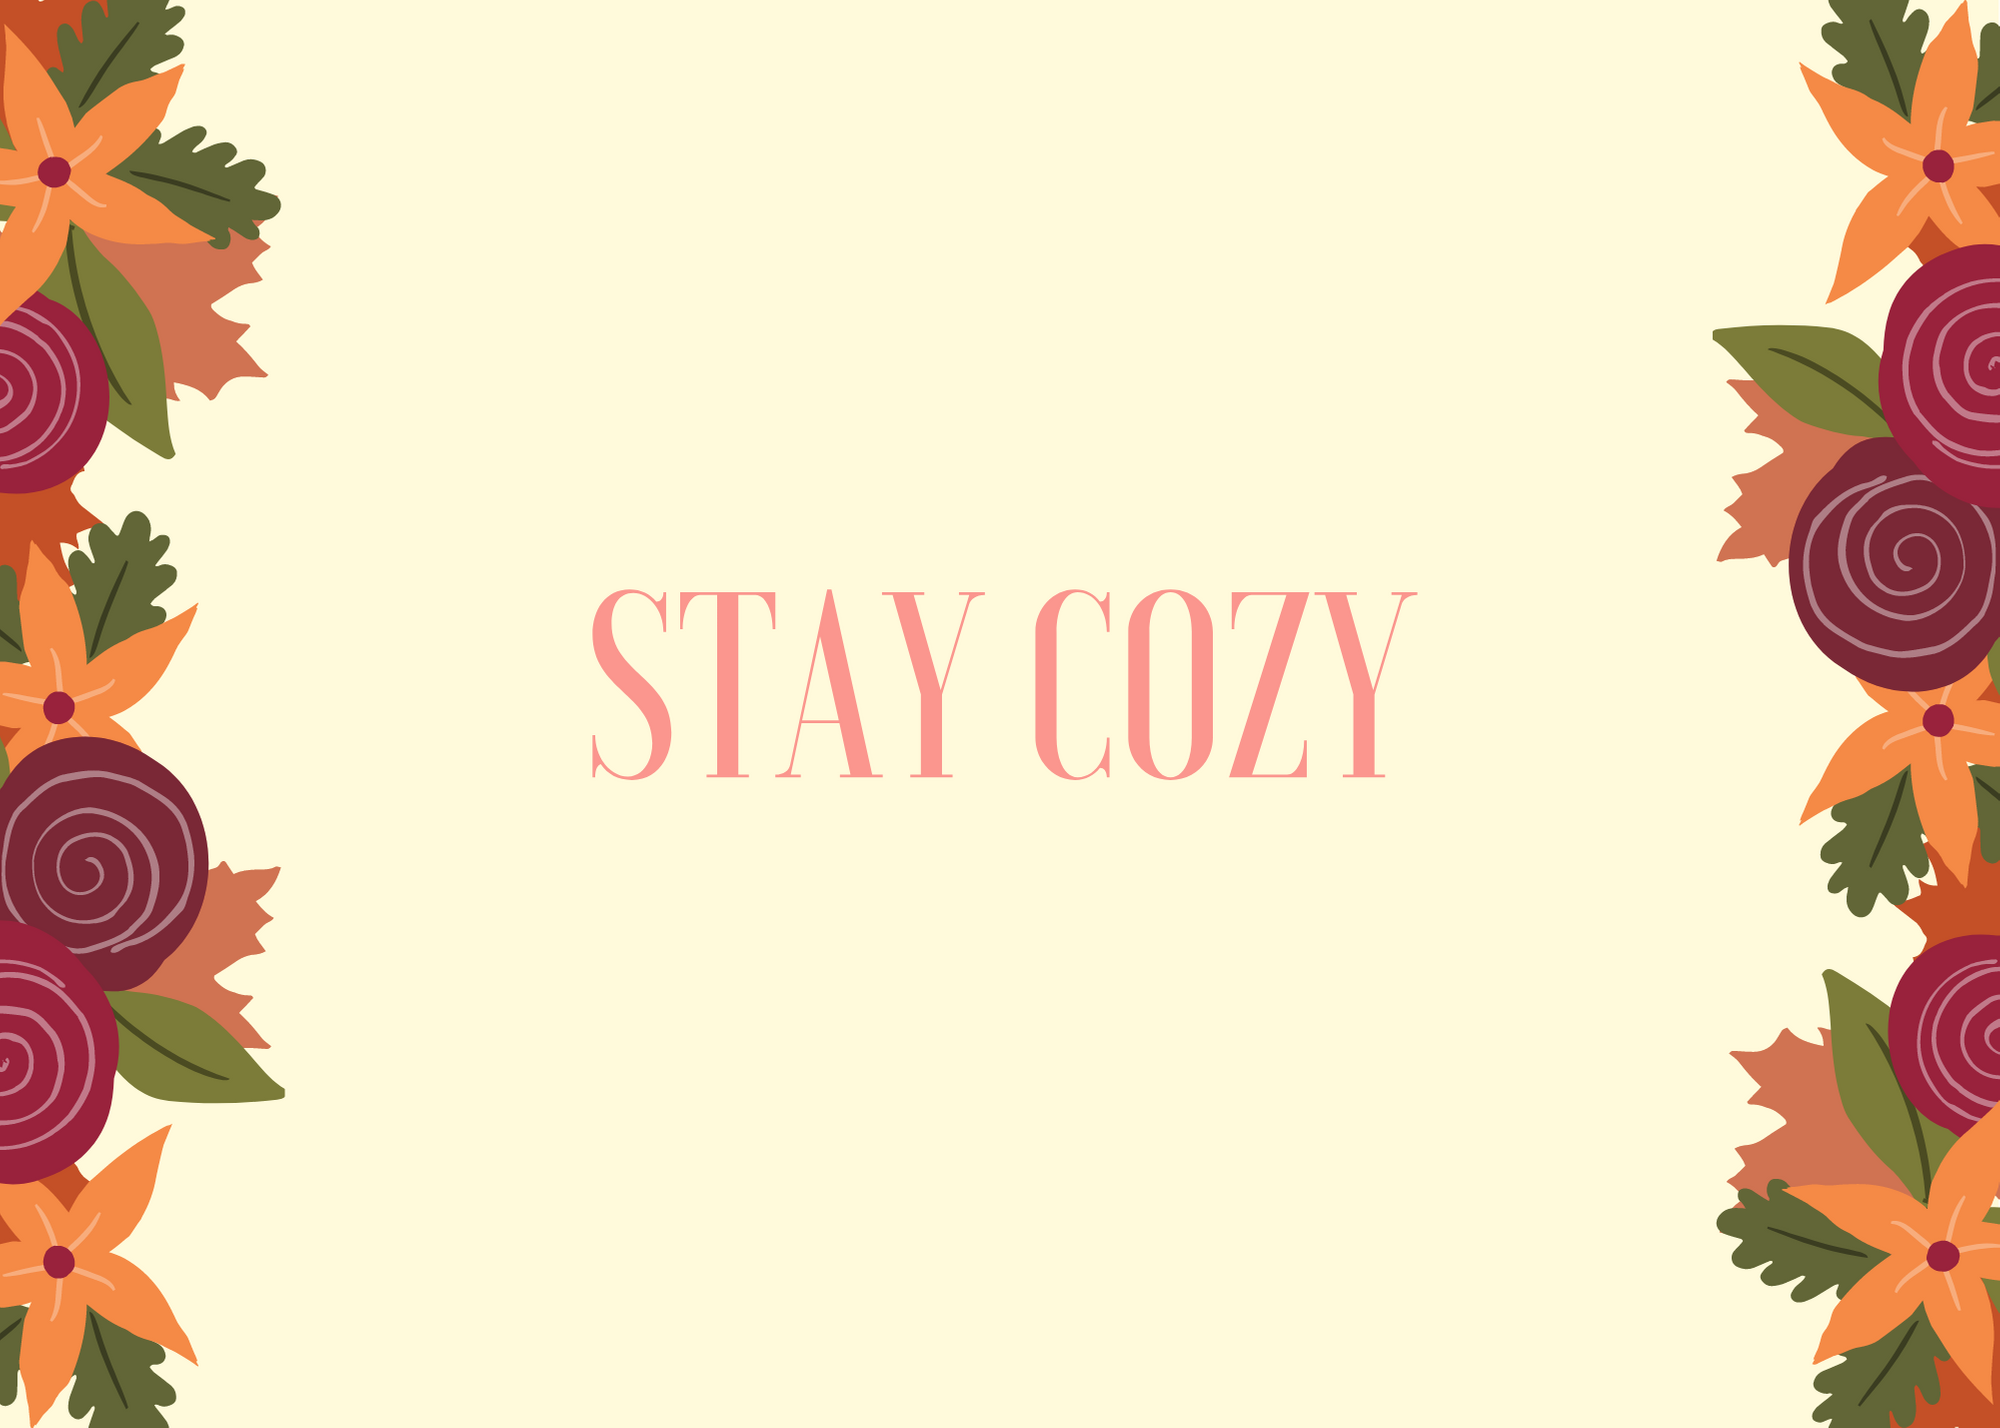 Funny Fall Instagram Caption About Staying Cozy